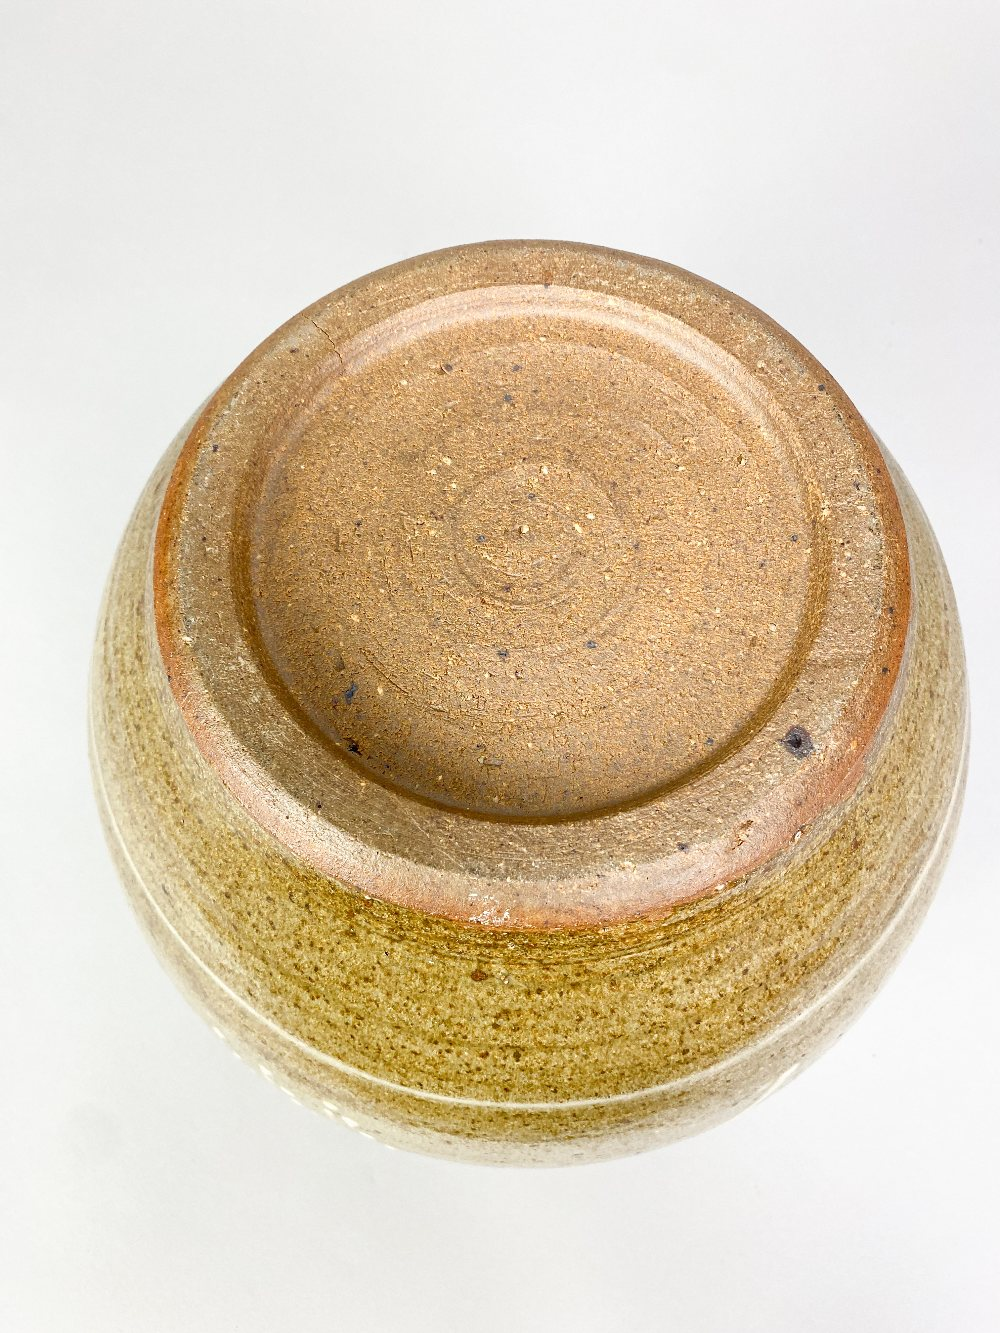 BERNARD LEACH (1887-1979) for Leach Pottery; a very large stoneware pot with floral decoration on - Image 4 of 6